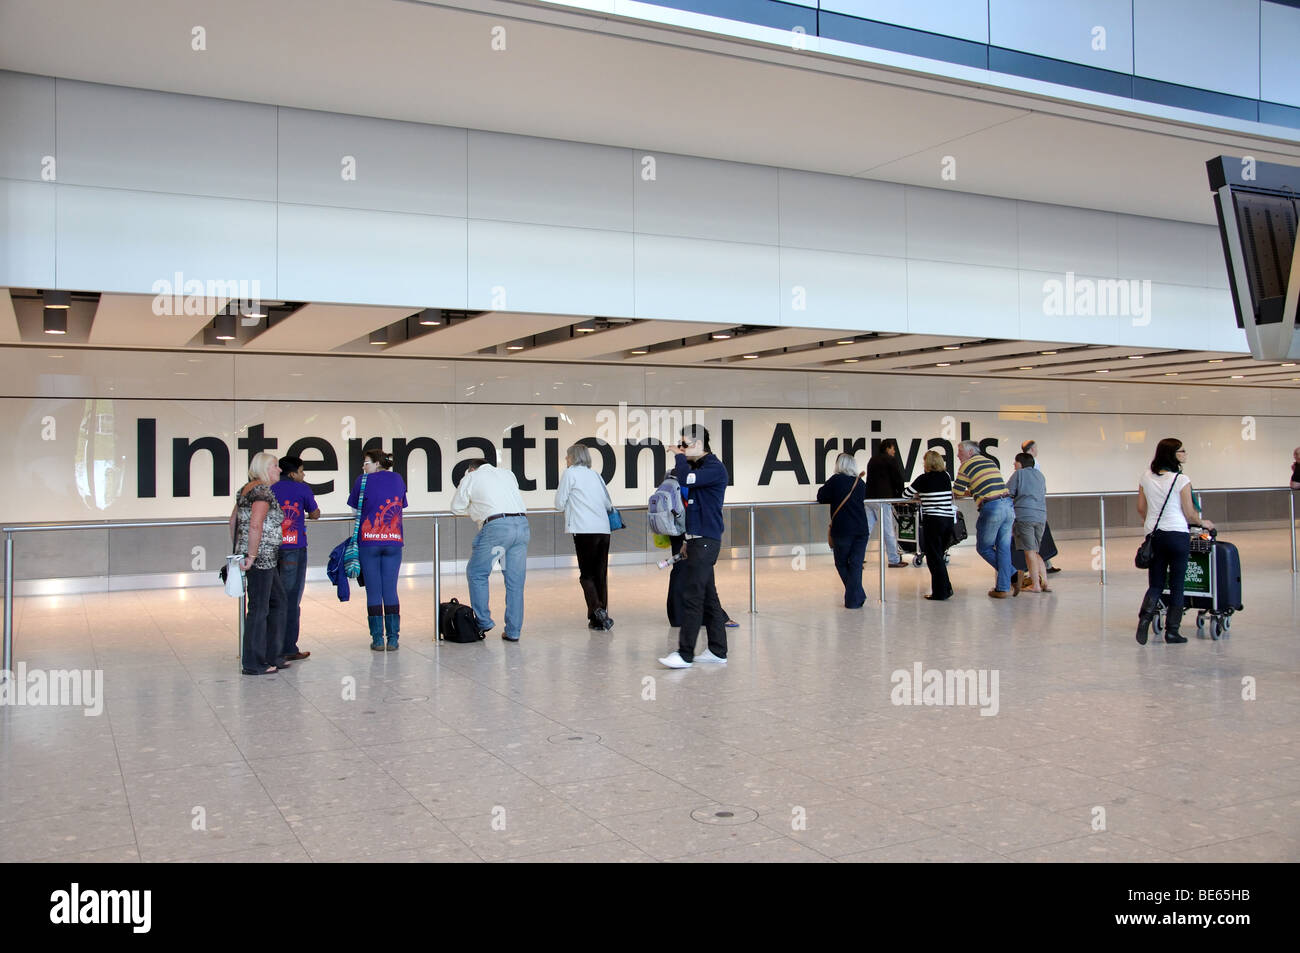 London Airports Arrivals Gallery